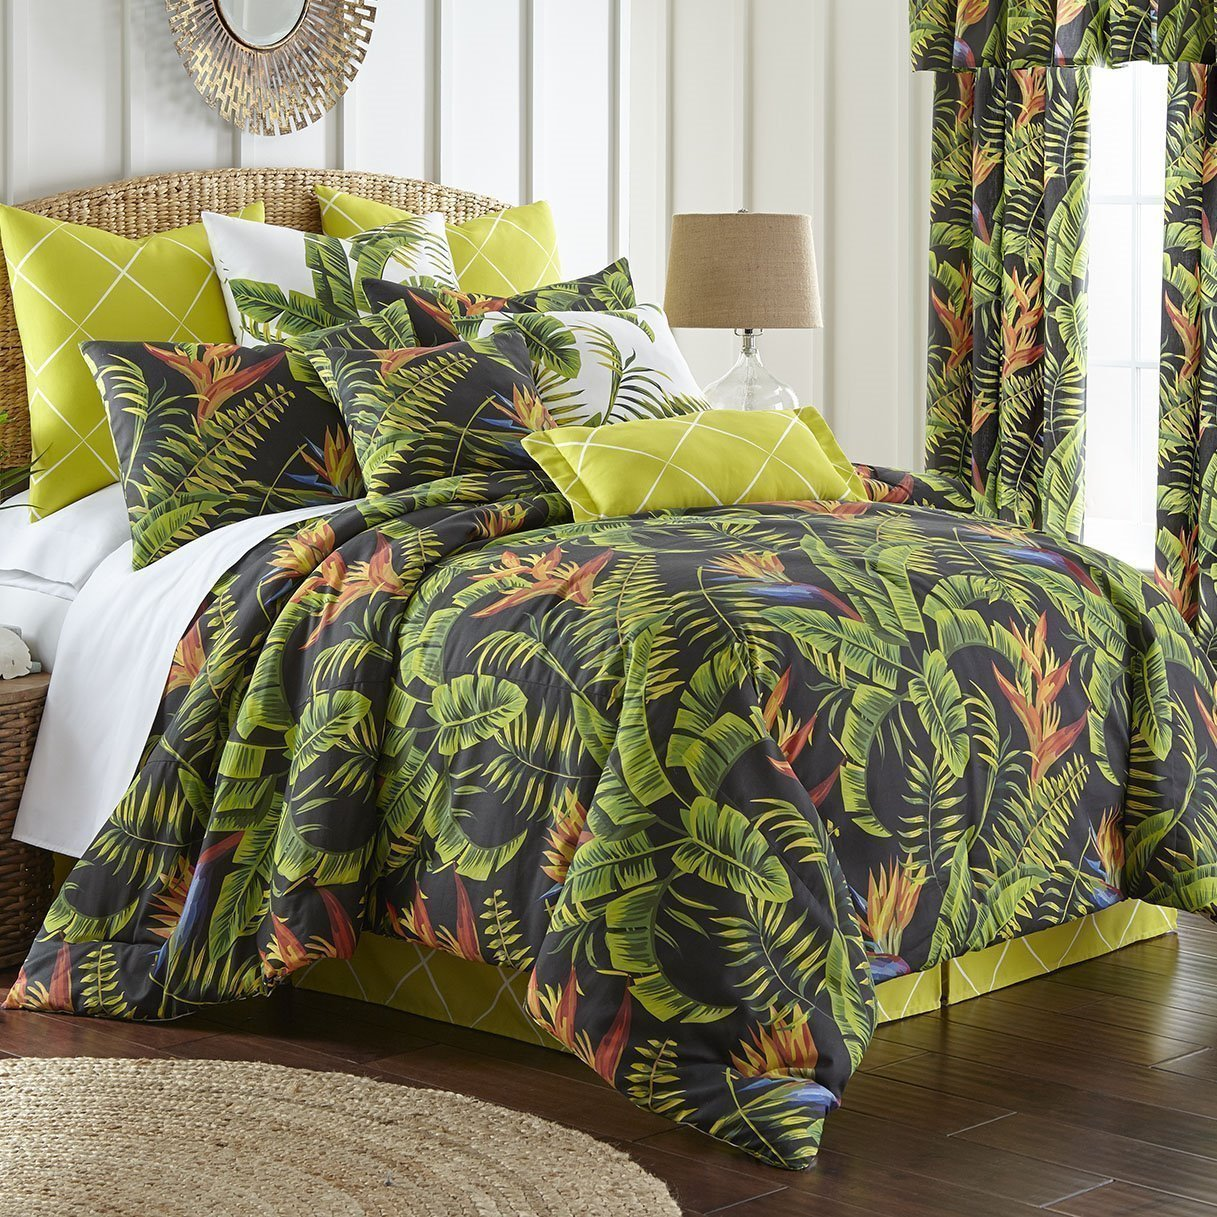 Flower Of Paradise Duvet Cover Set Full Size